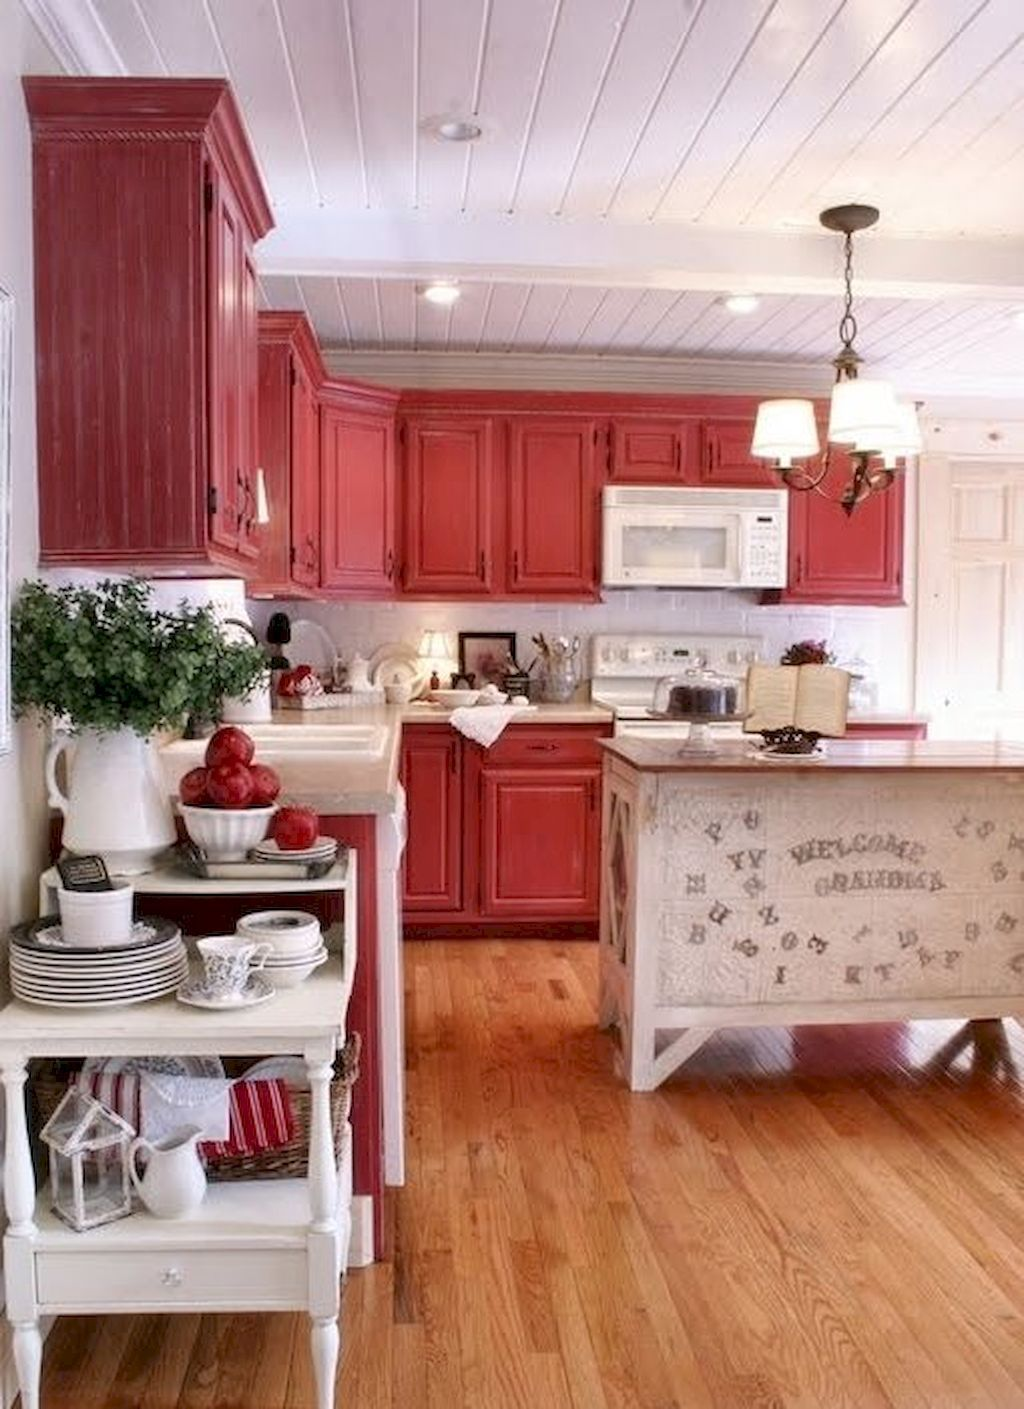 90 rustic kitchen cabinets farmhouse style ideas 89 farmhouse style kitchen red cabinets on kitchen cabinets farmhouse style id=68481